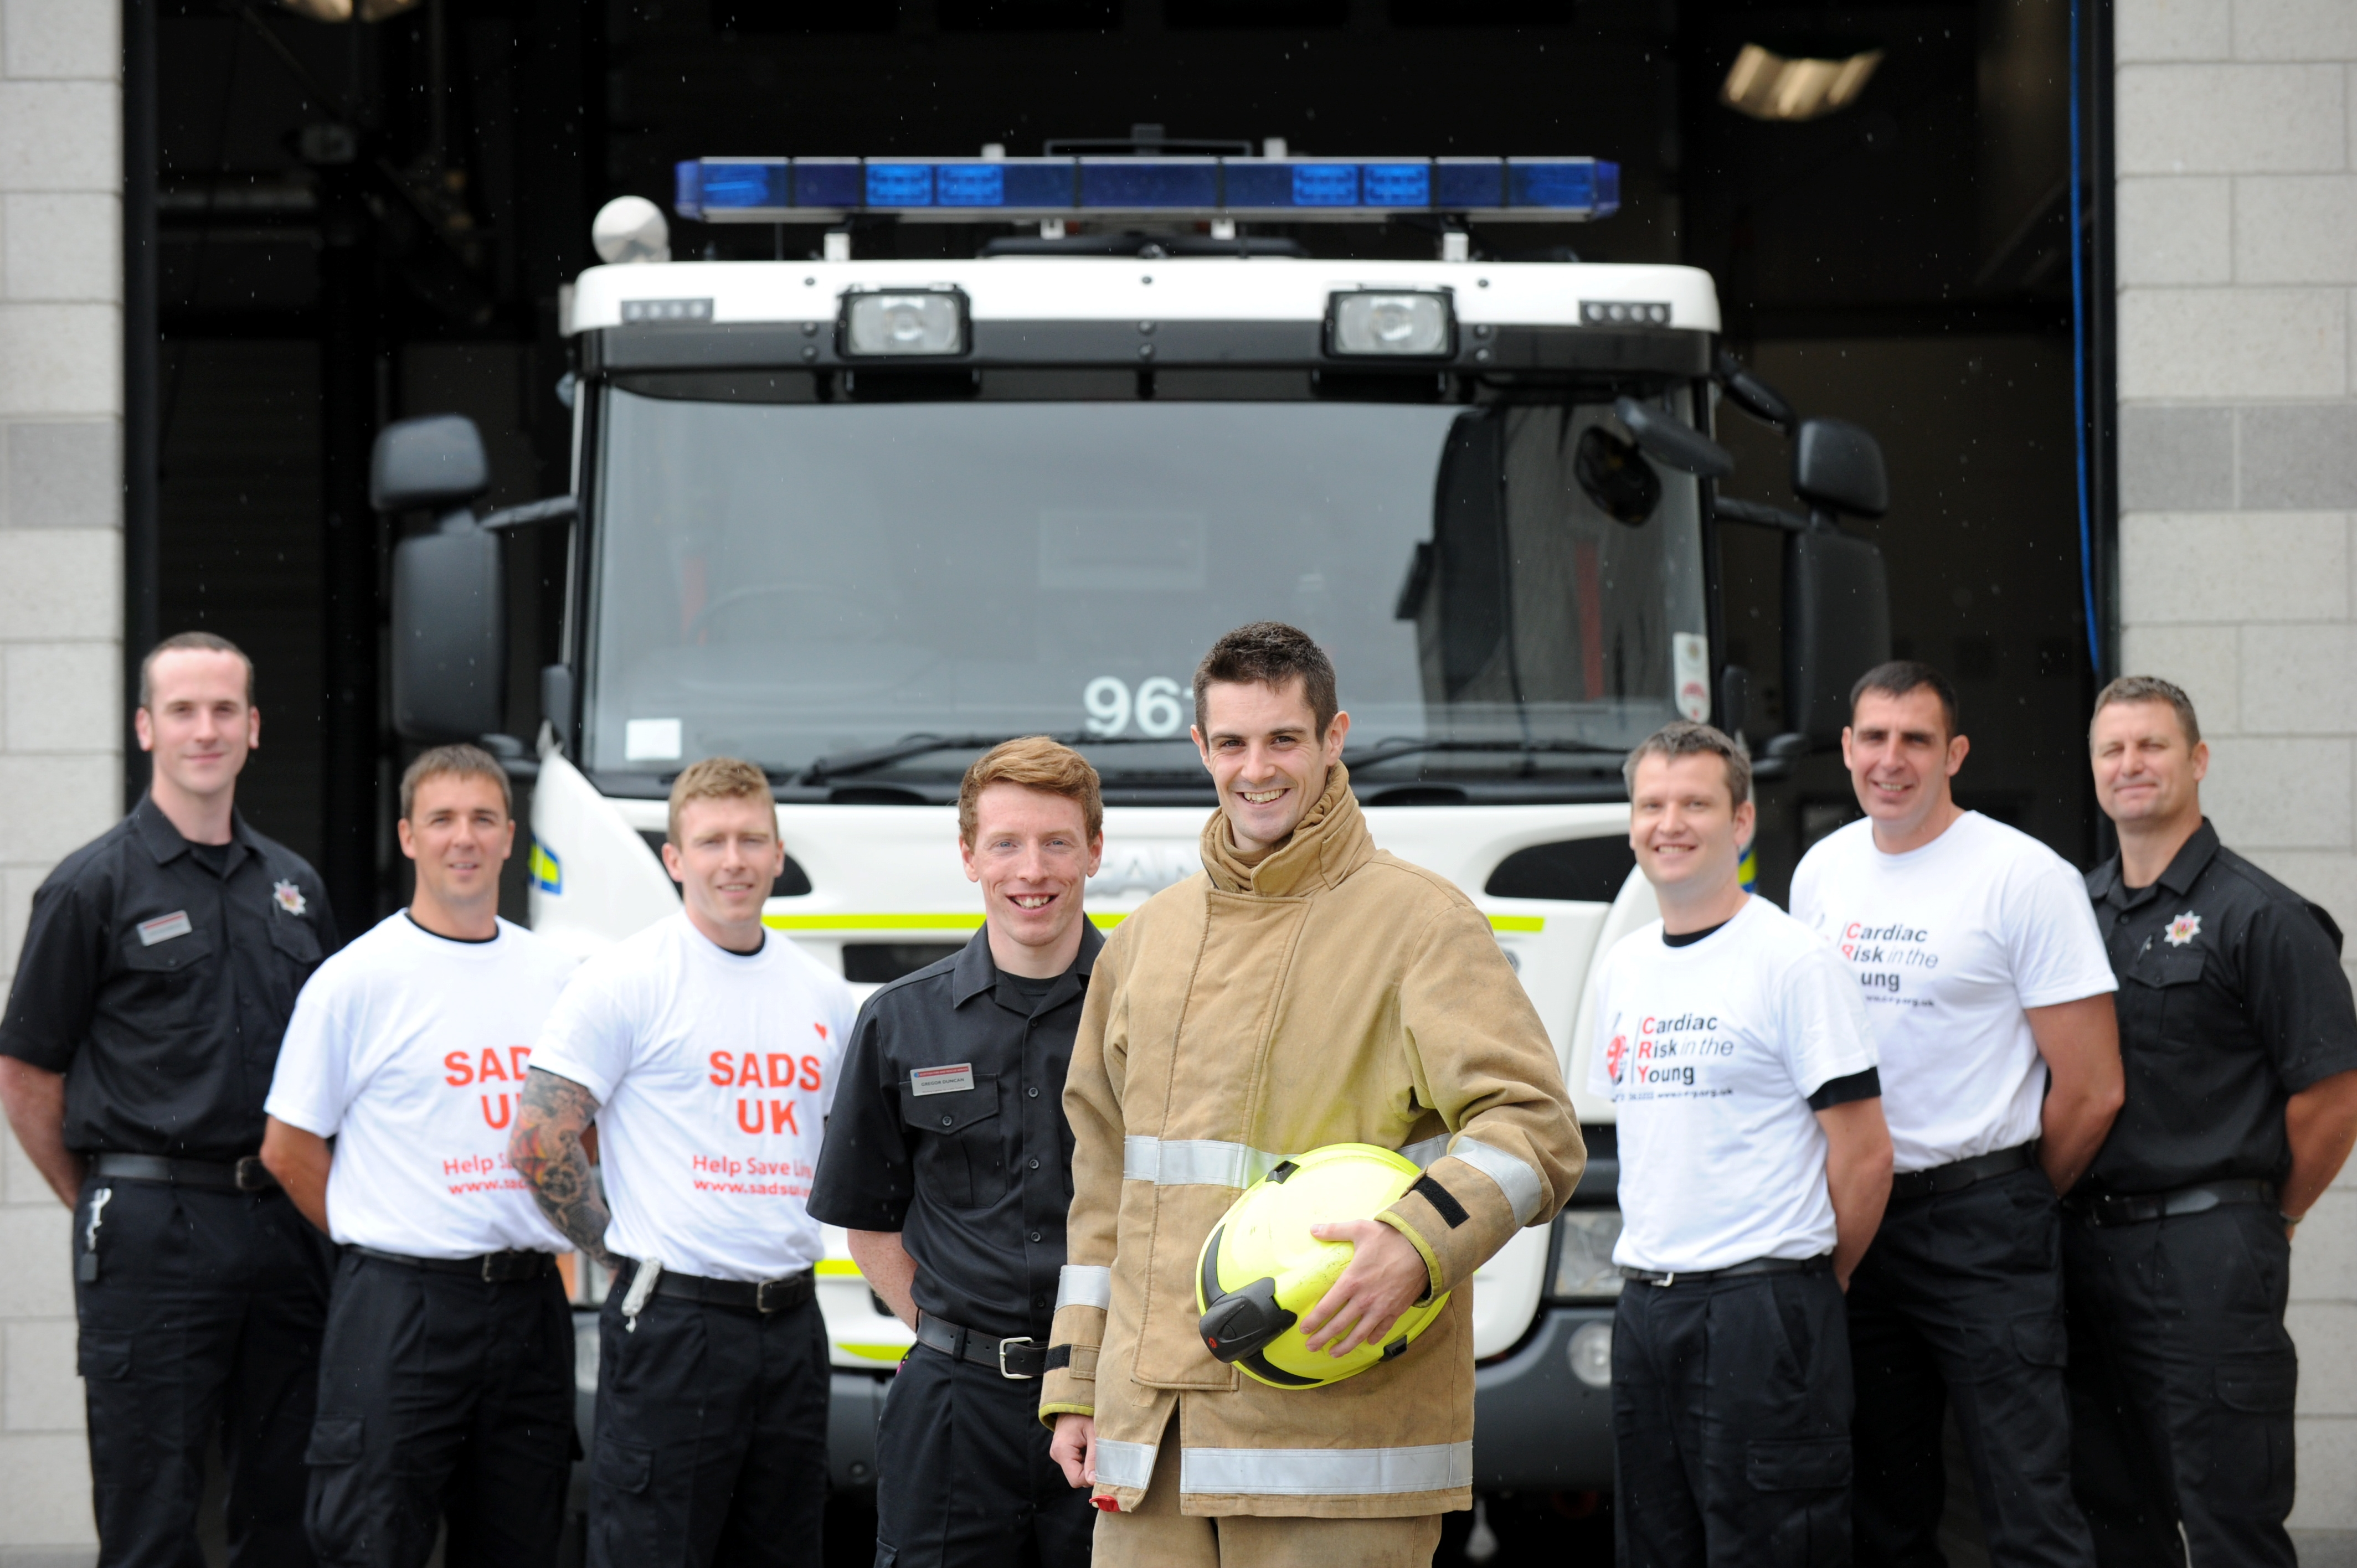 Aberdeen based firefighter supporting life saving project